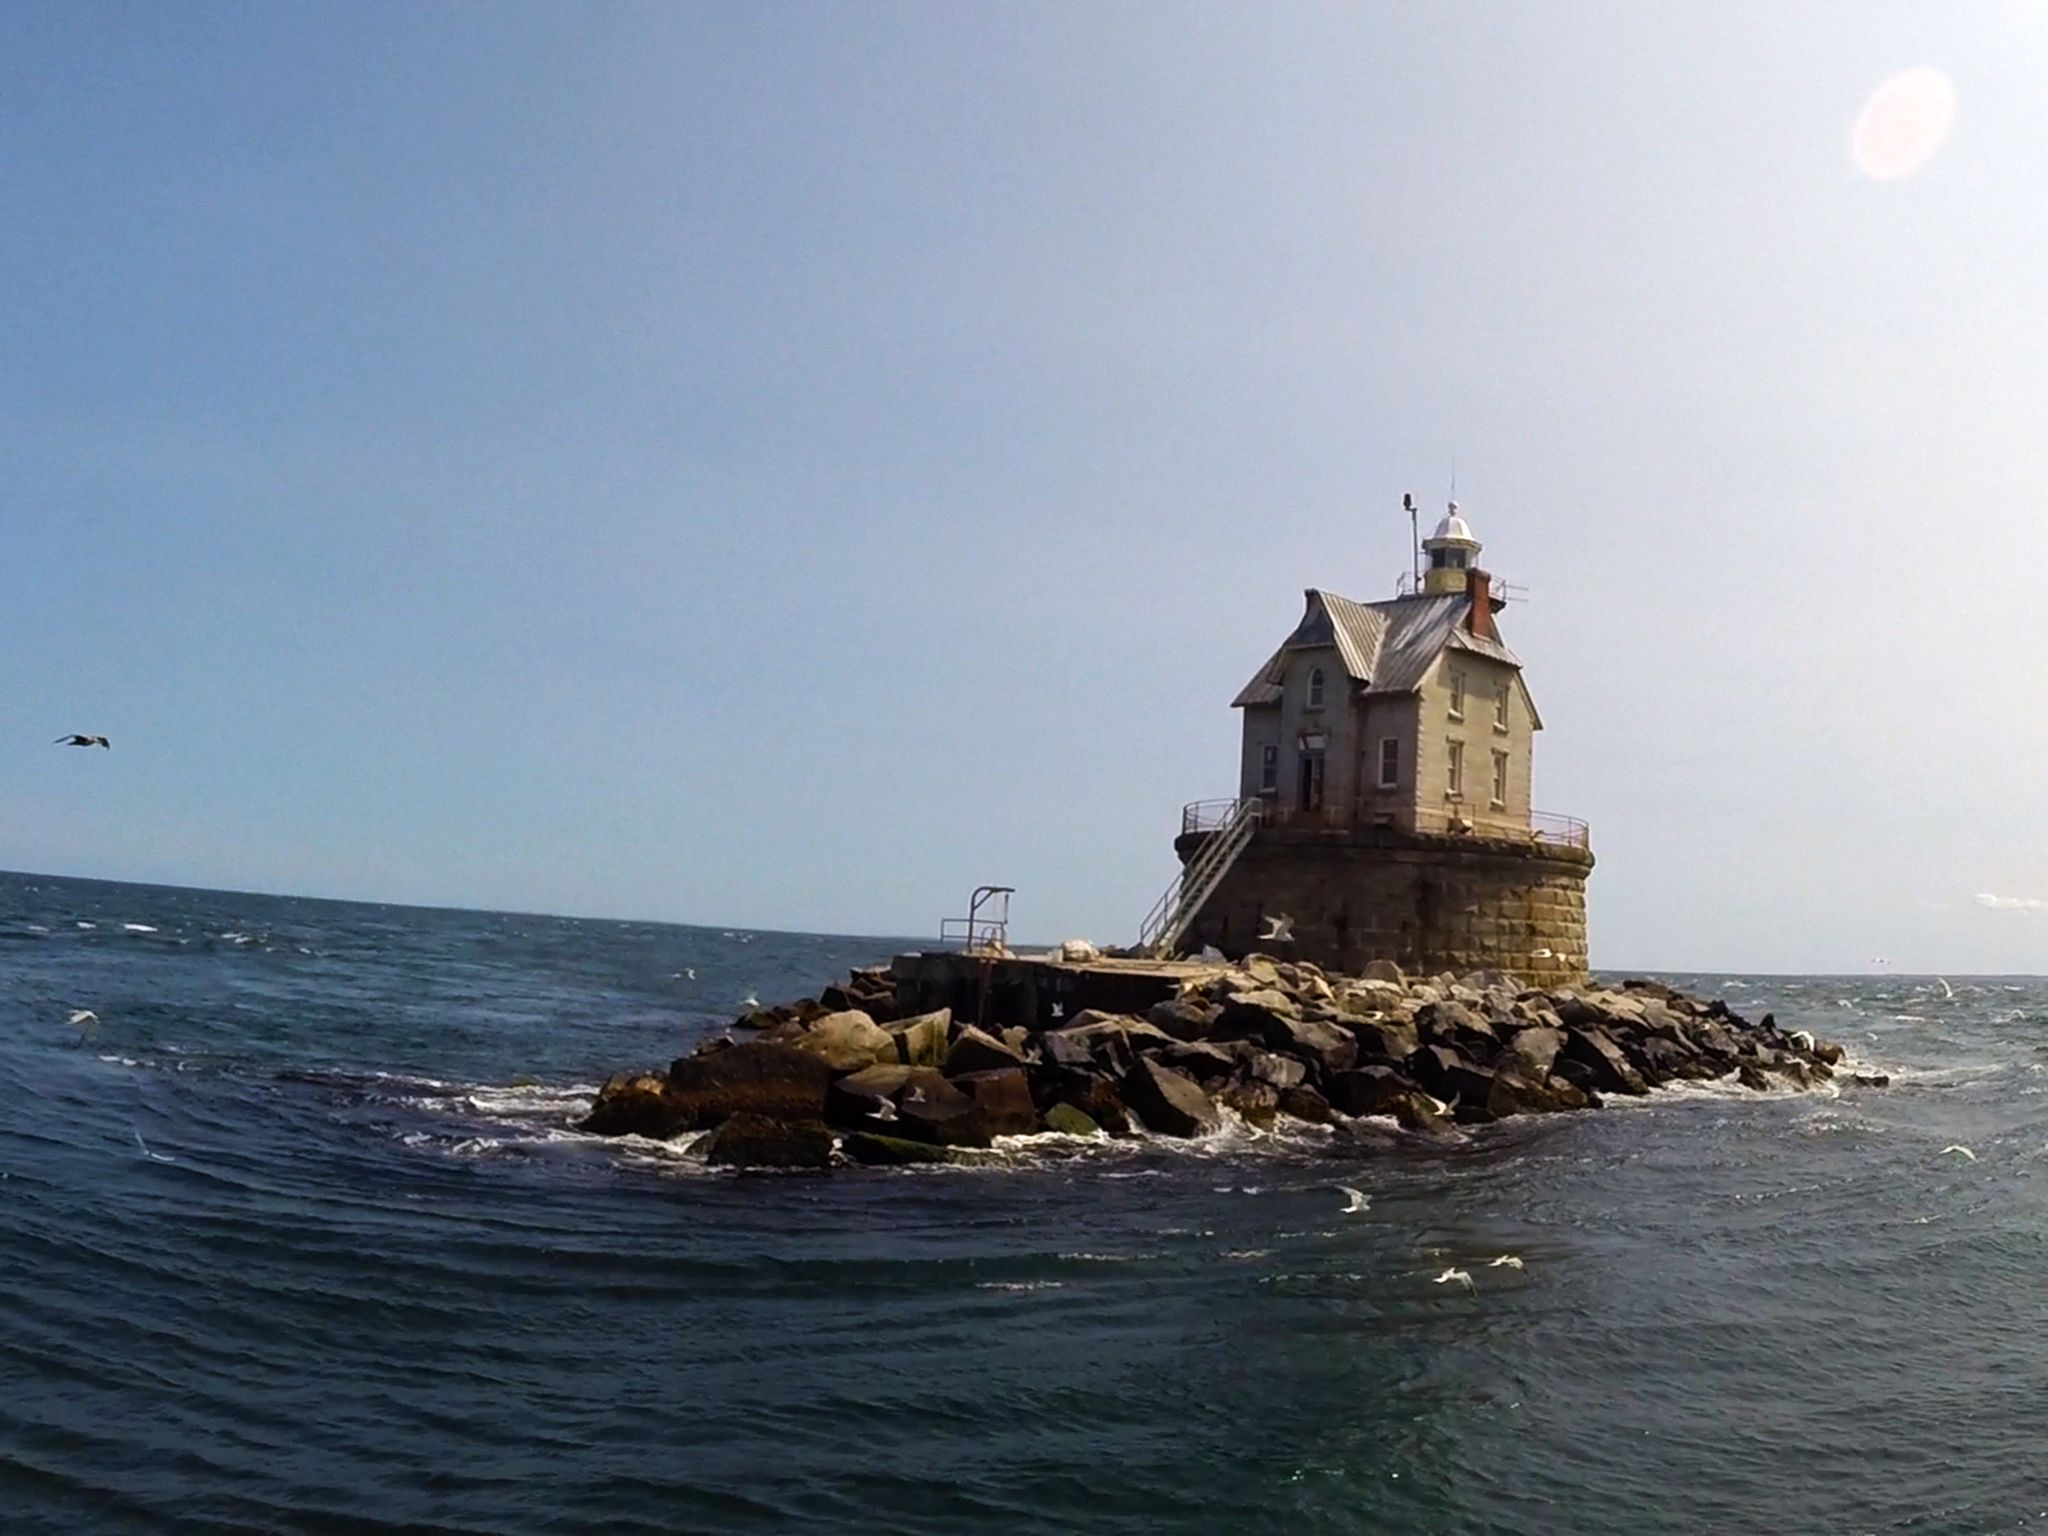 Long Island, N.Y.: The Race Rock Lighthouse stands in Long Island Sound on a beautiful... [Photo of the day - آوریل 2015]